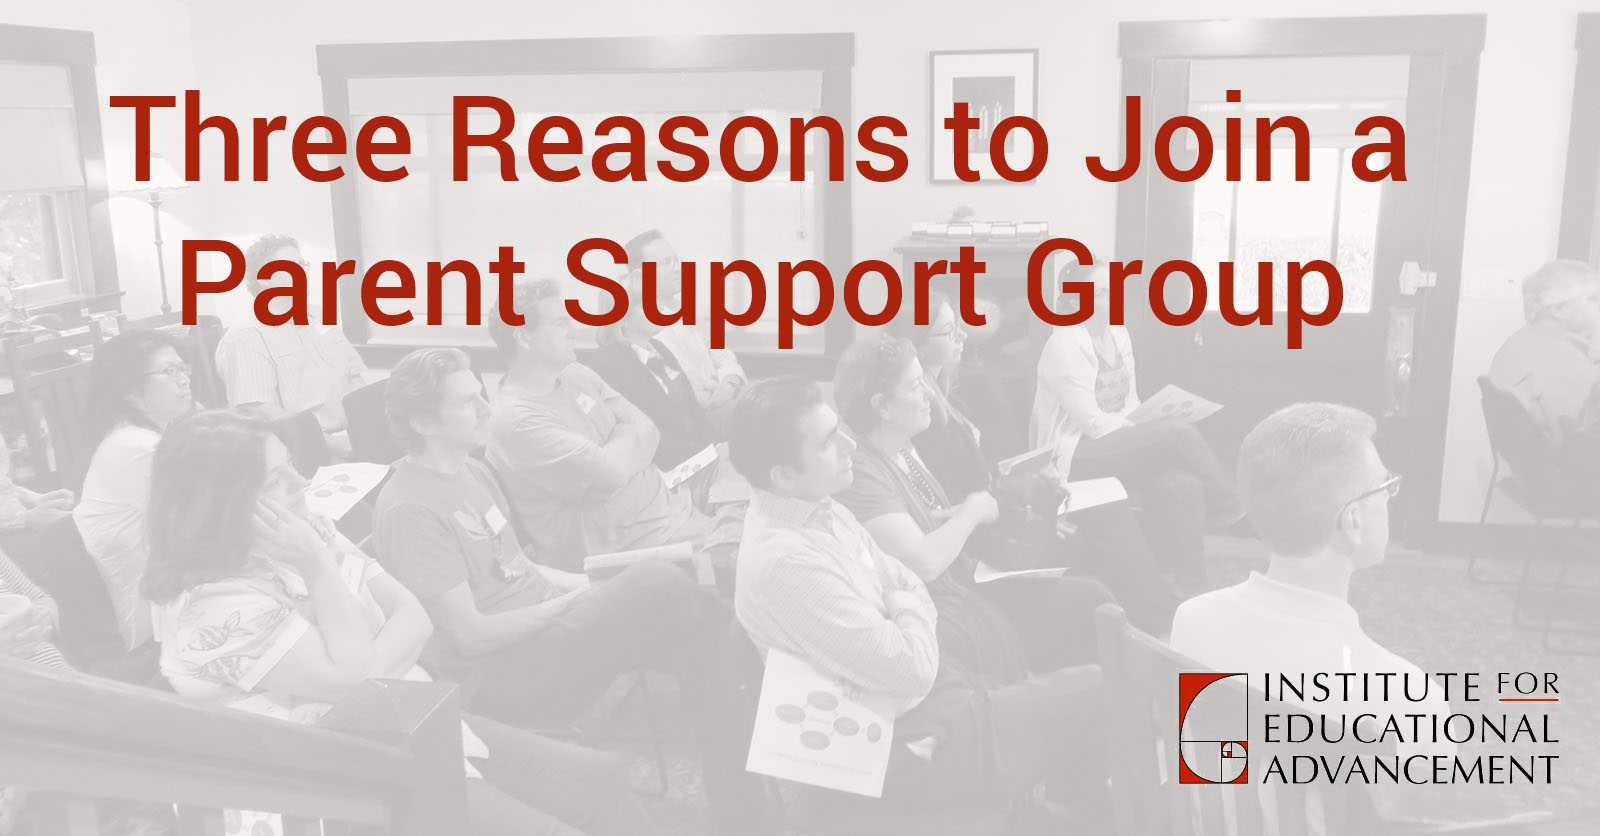 Three Reasons to Join a Parent Support Group